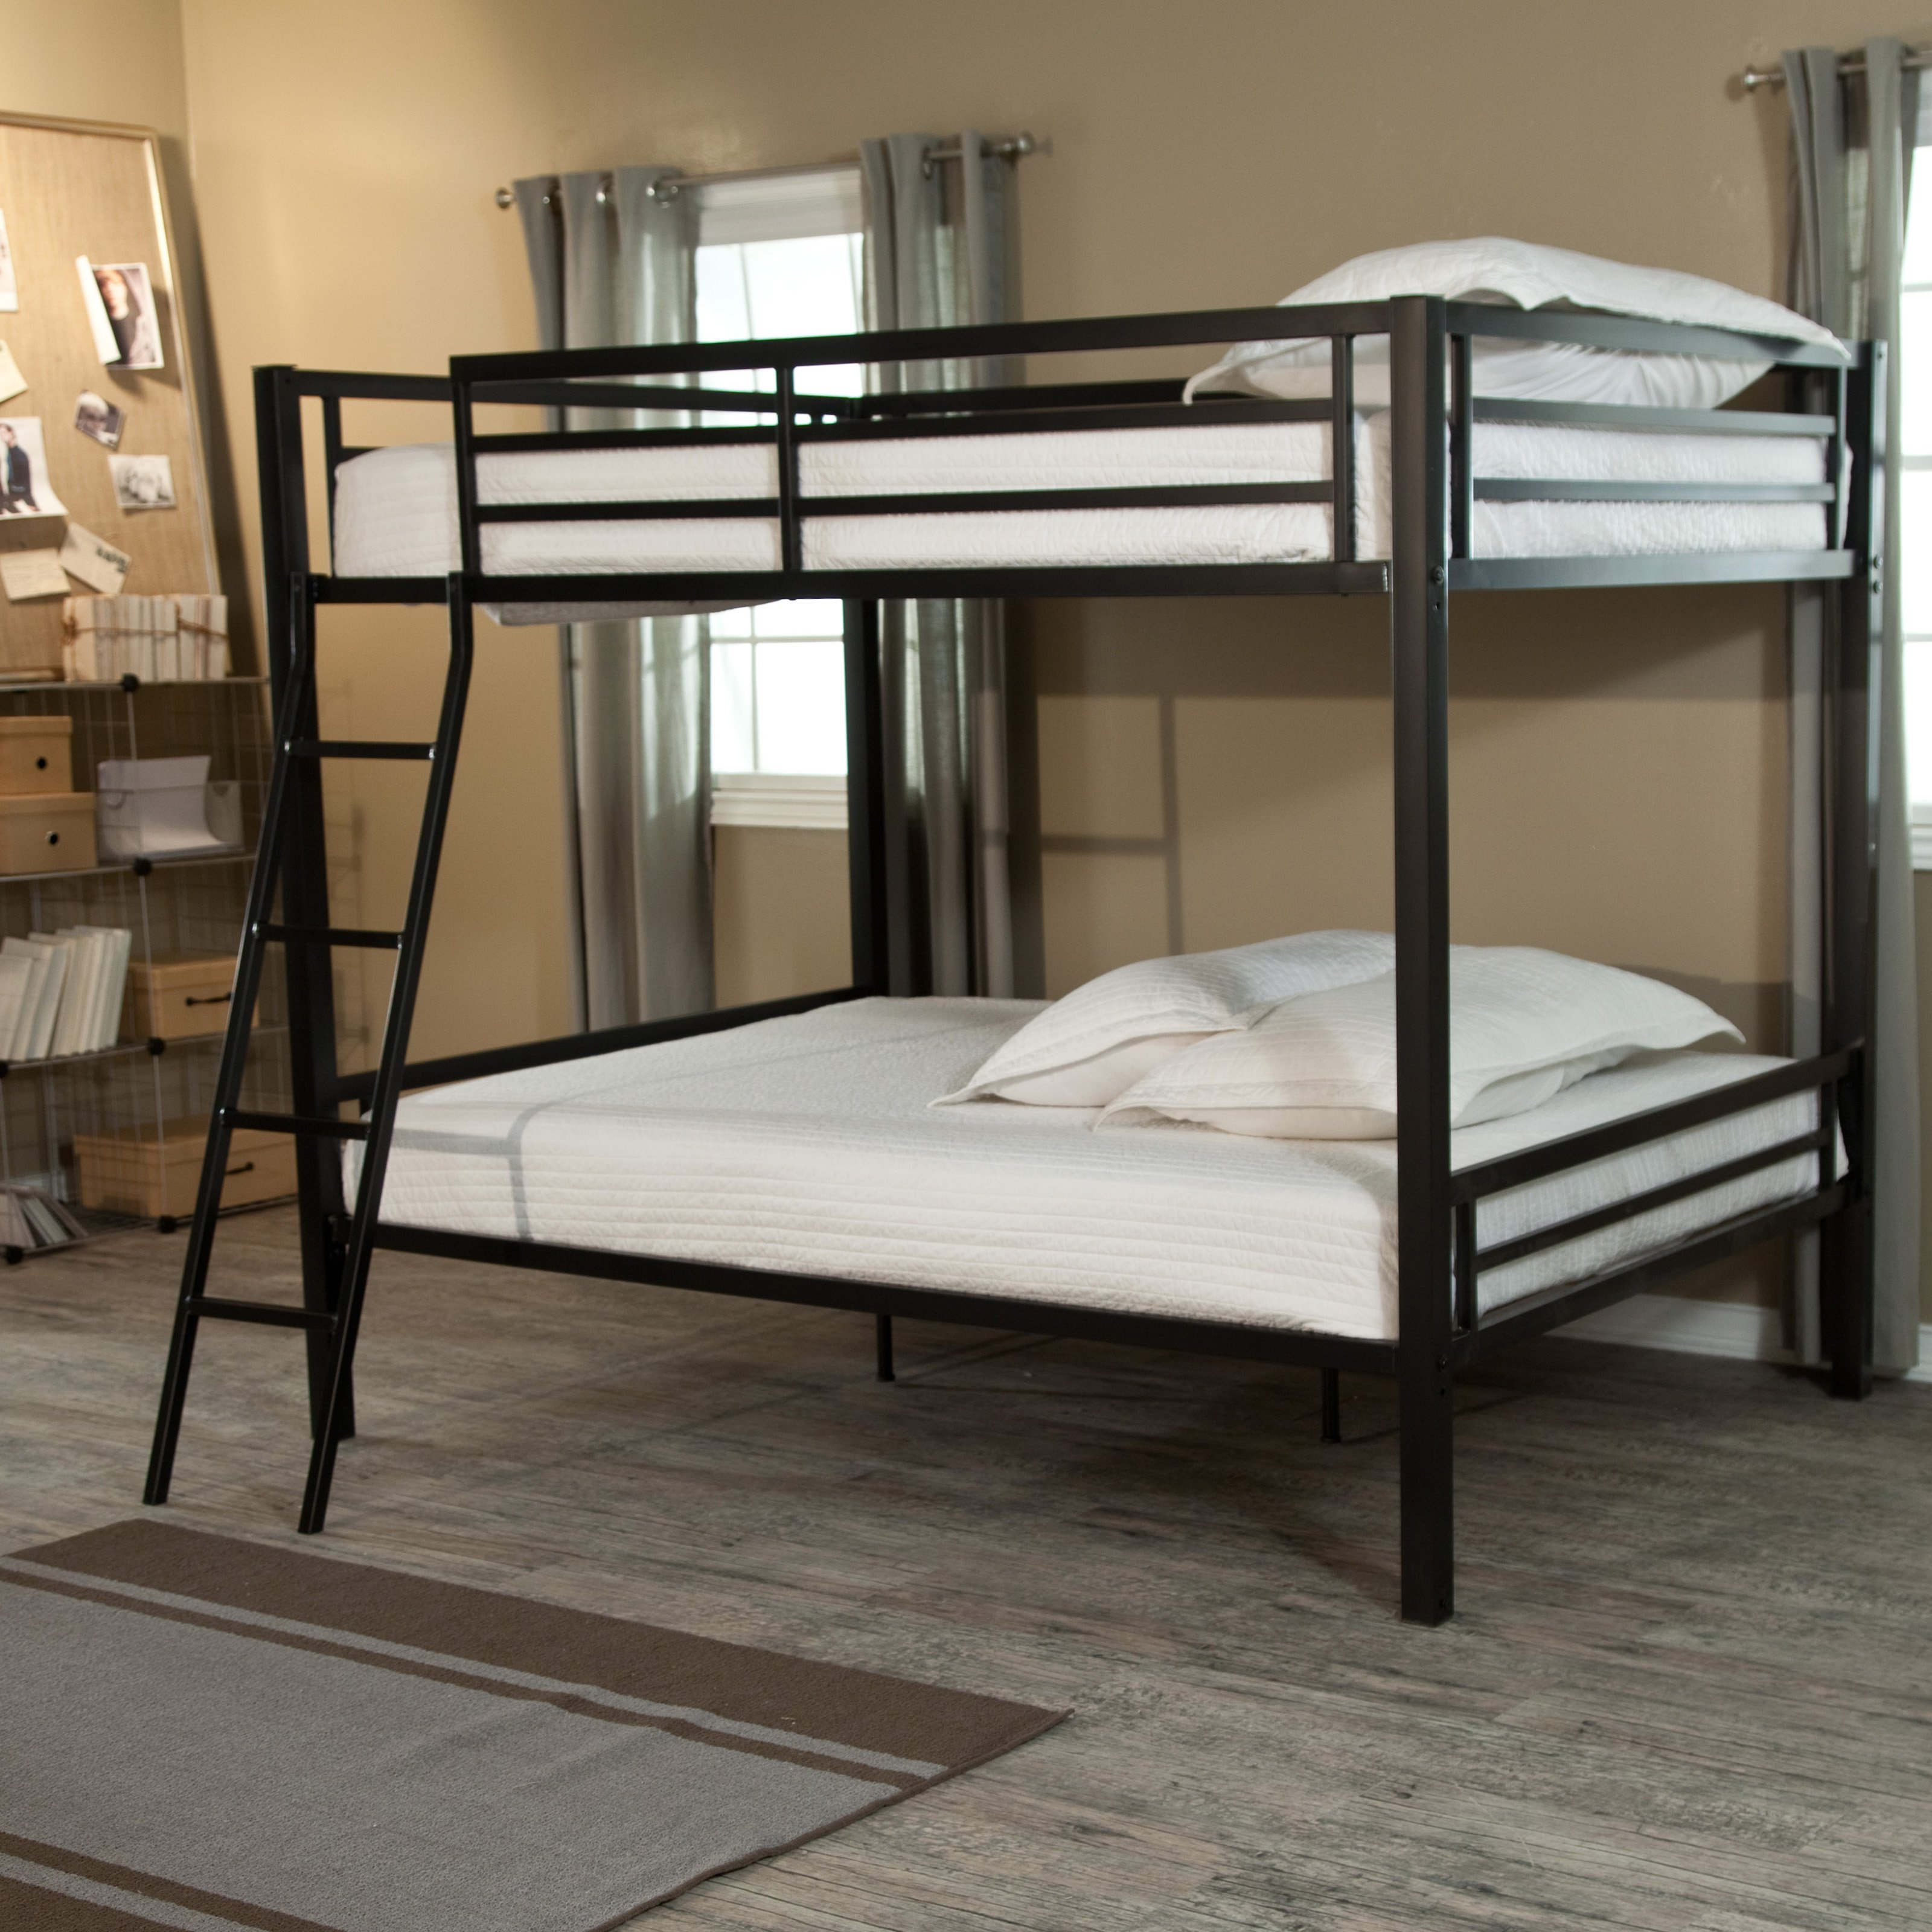 Duro Hanley Full over Full Bunk Bed Black by